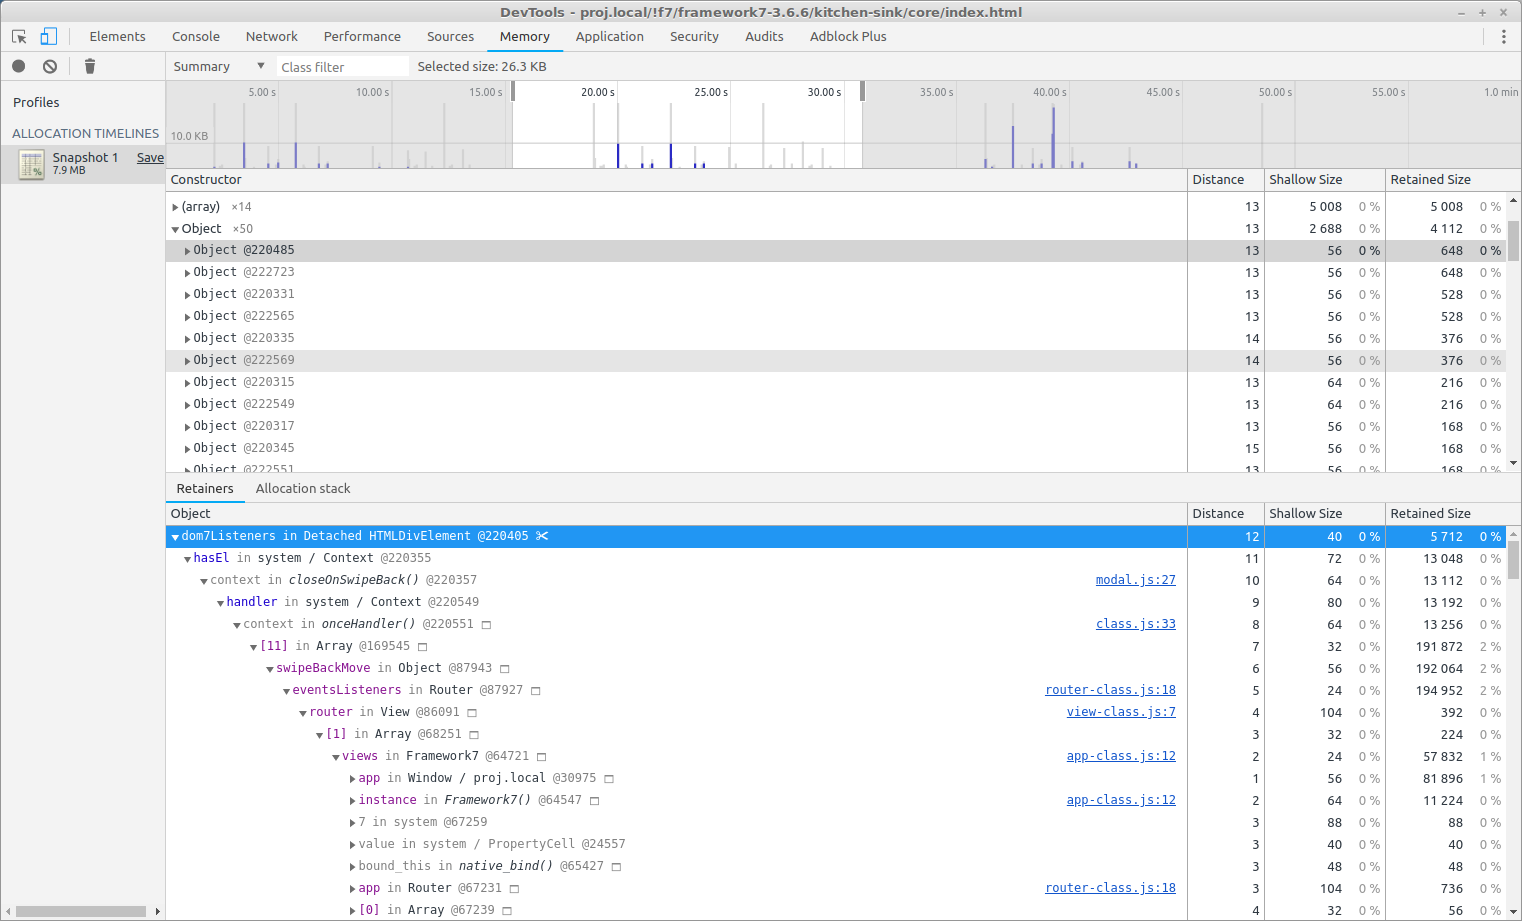 devtools - proj local- f7-framework7-3 6 6-kitchen-sink-core-index html_351